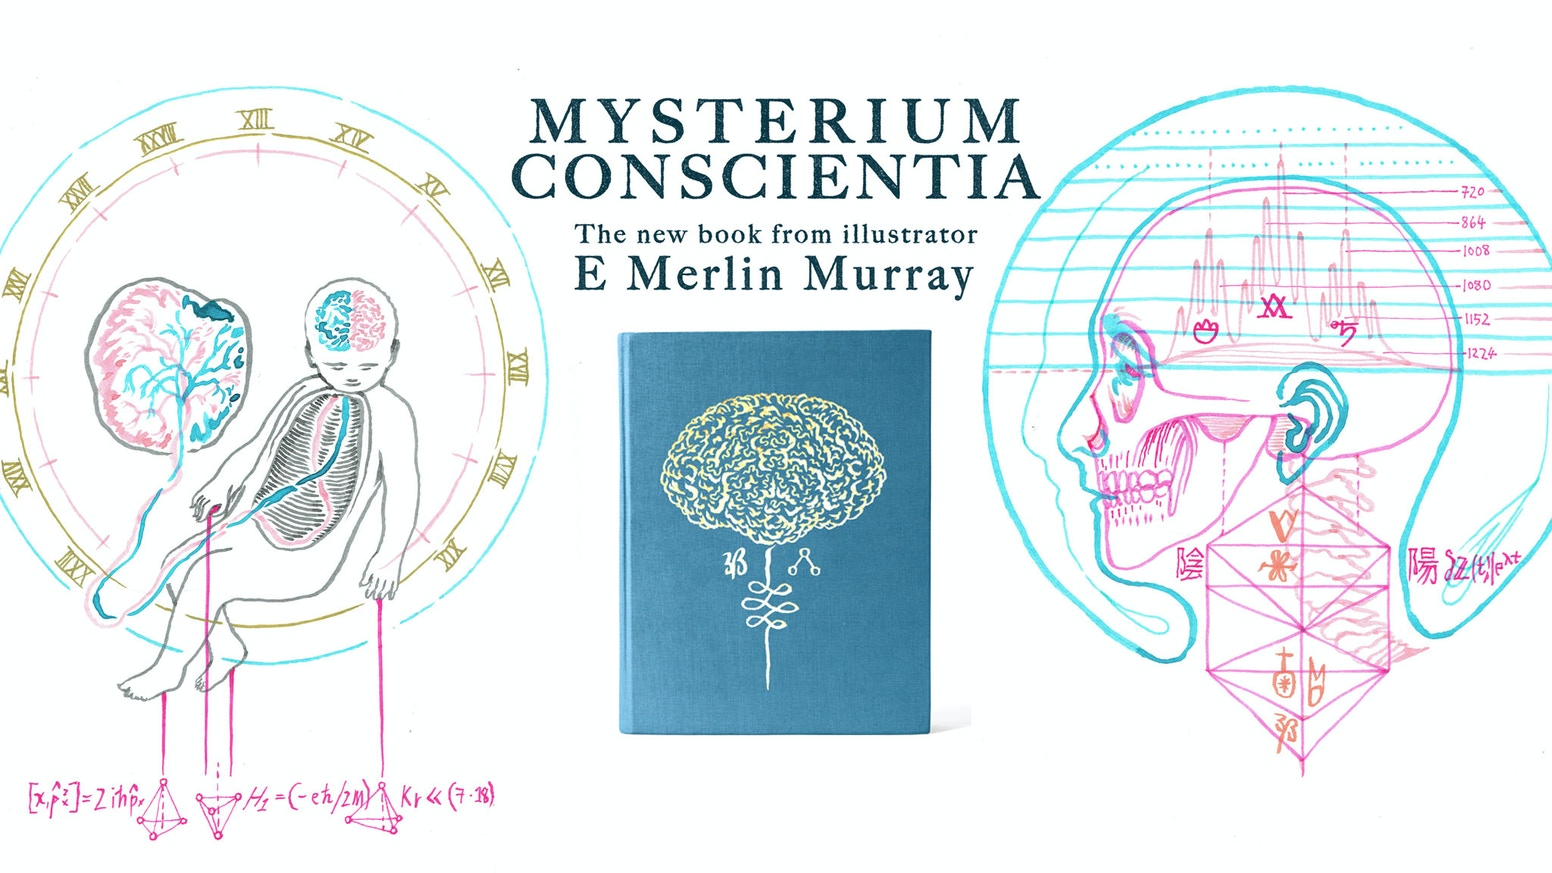 A book of drawings based on the eternal mystery of human consciousness, via a set of arcane sciences, esotericism, and the mystical.